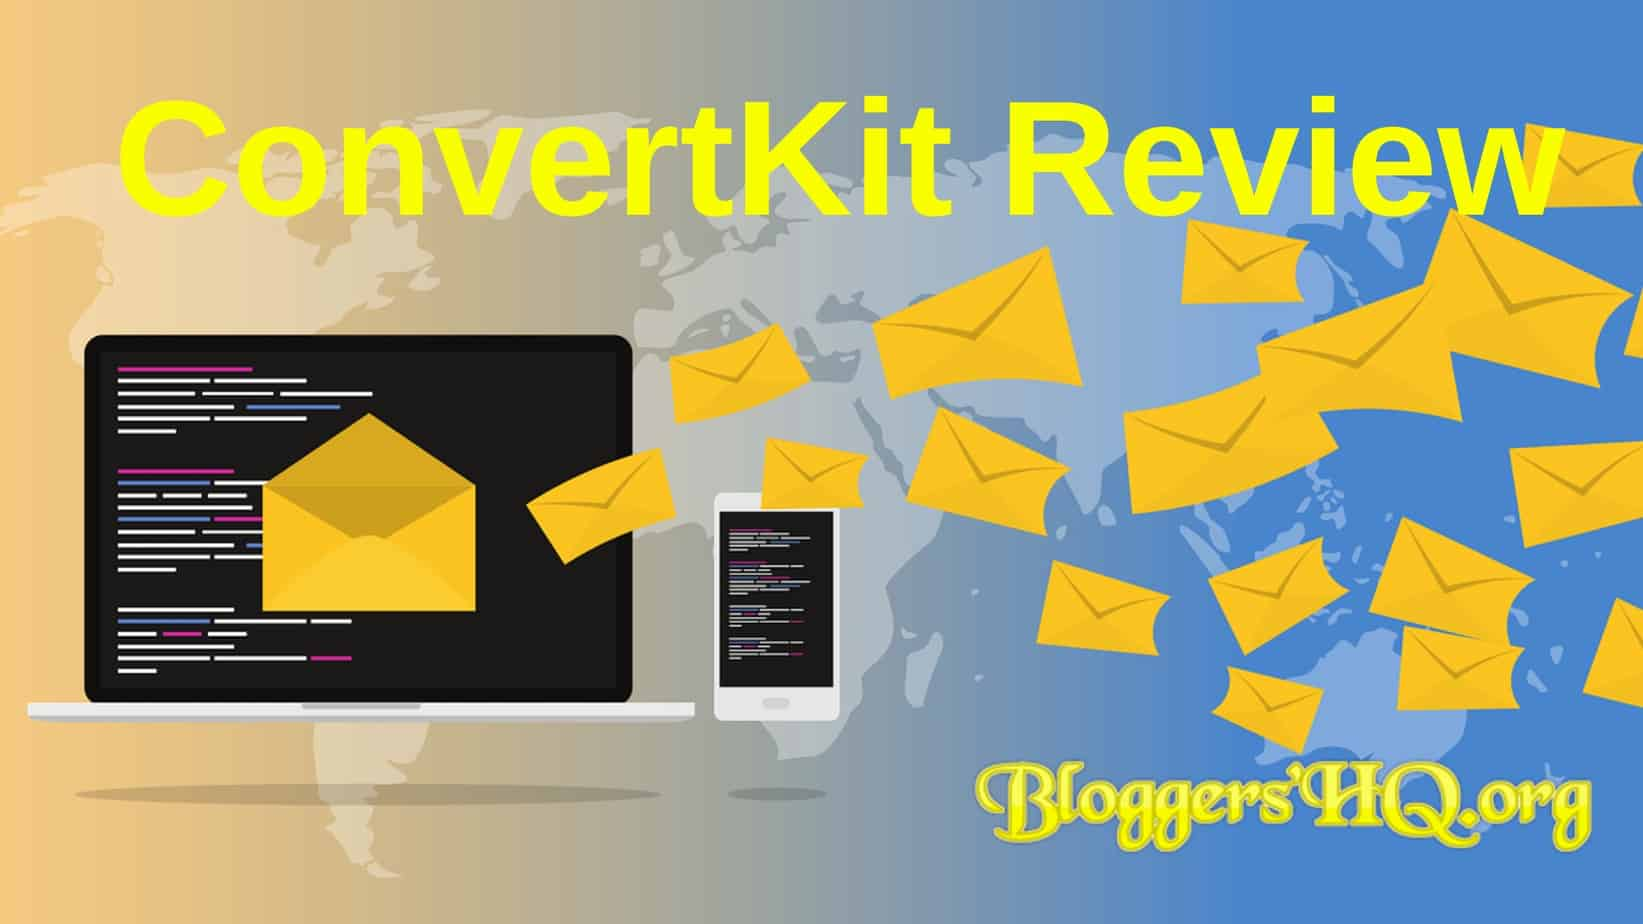 75% Off Online Voucher Code Convertkit Email Marketing